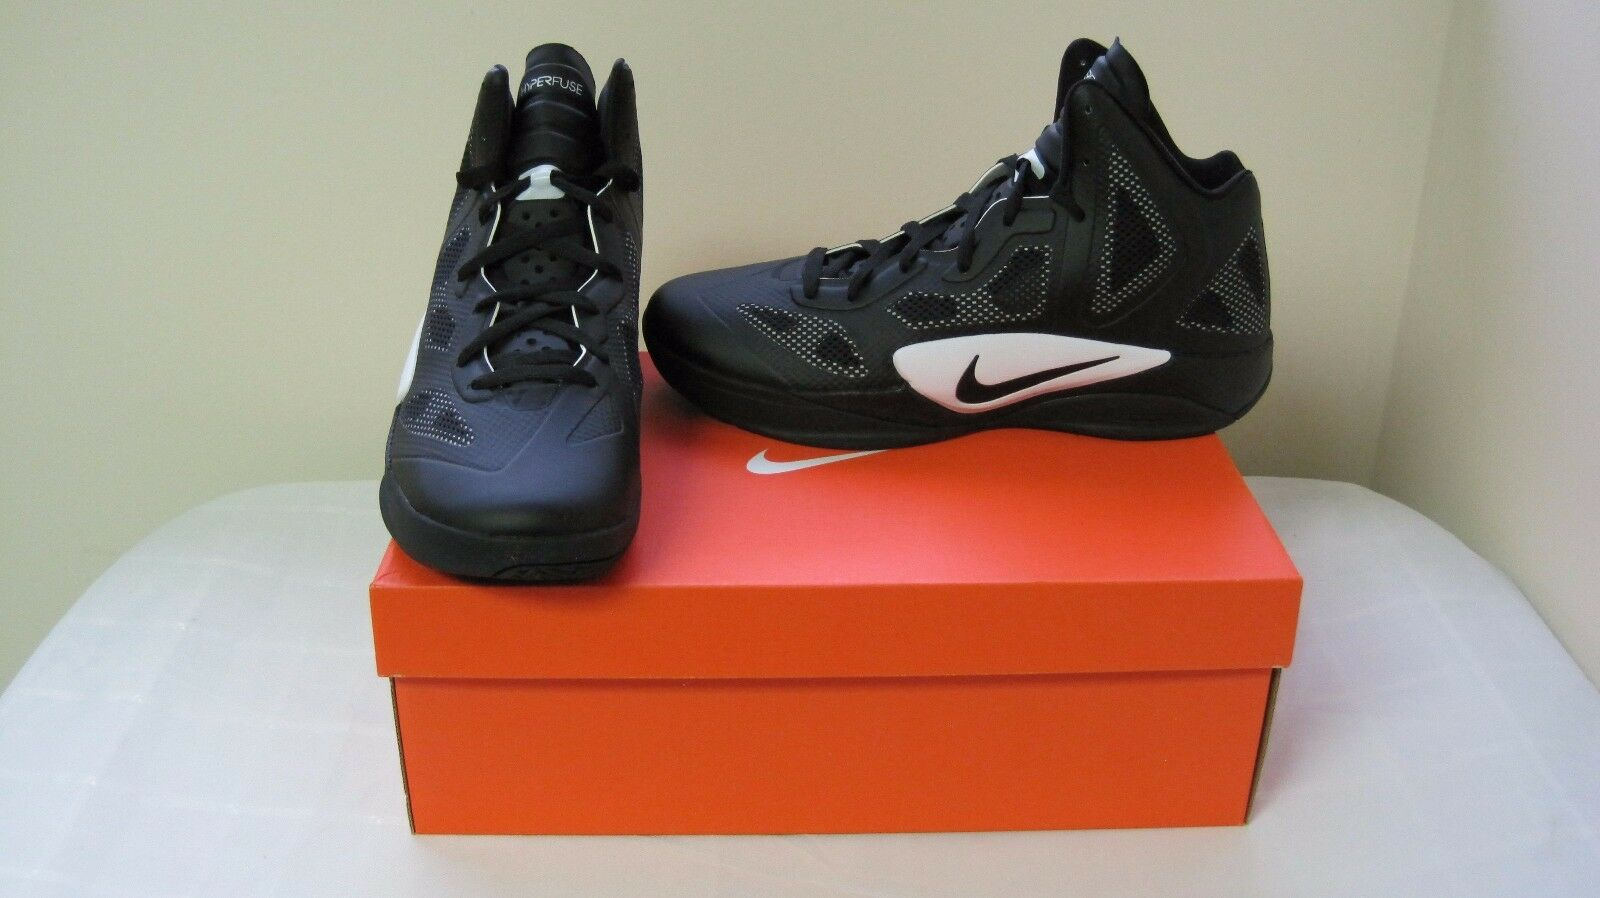 New Men's Nike Zoom Hyperfuse Basketball Shoes 454146-001 Sz 12.5 Blk/Wht 65R-T